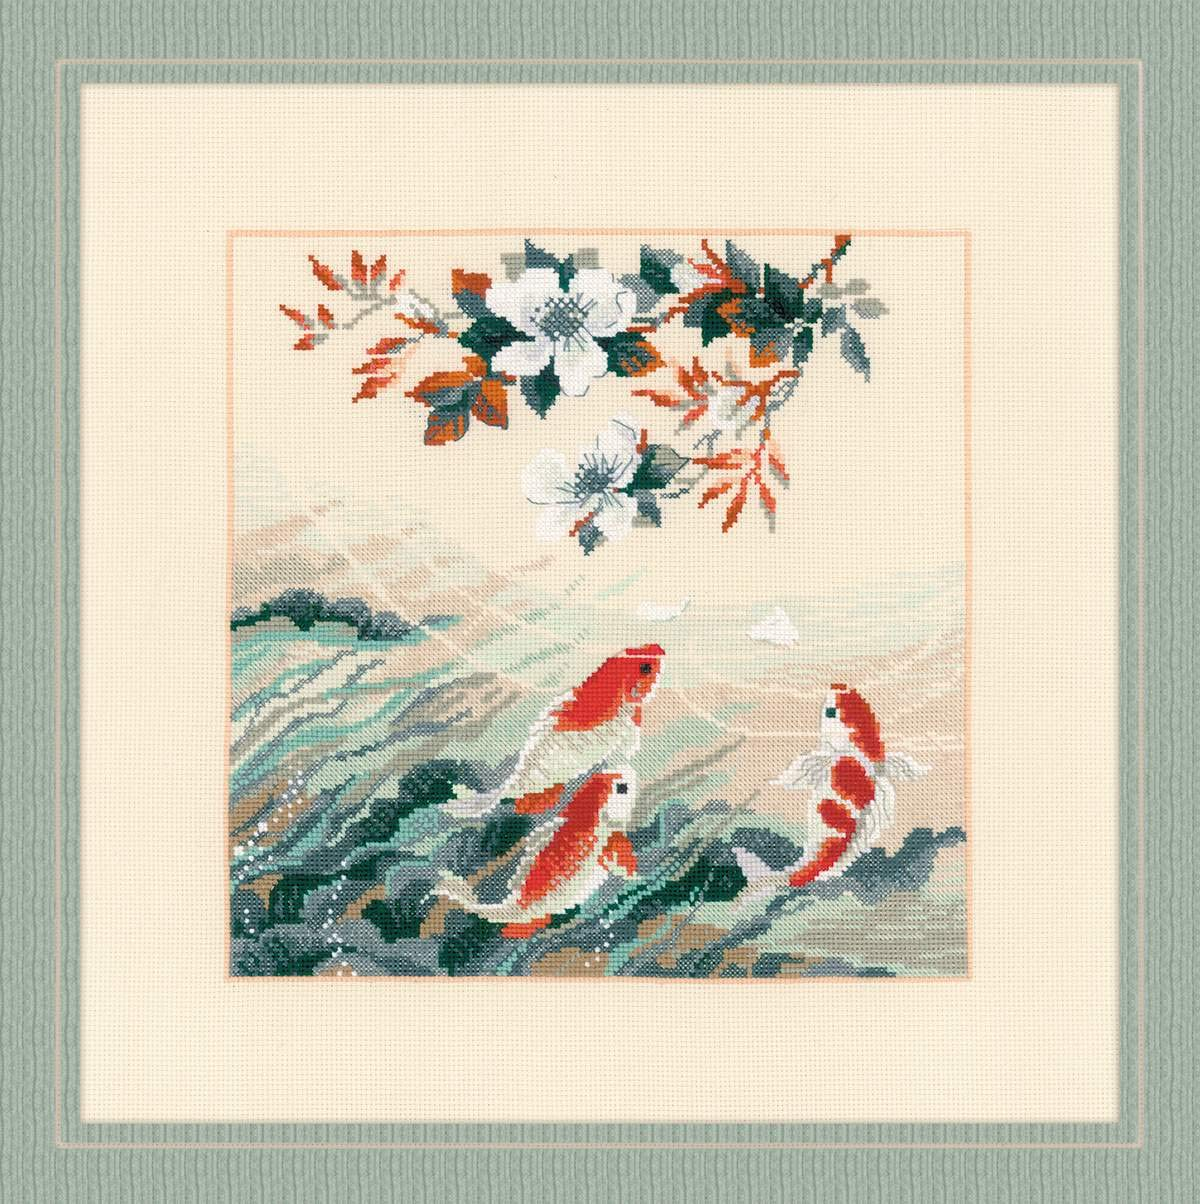 LoveinDIY Stamped Cross Stitch Kit Tropical Fish Pattern Embroidery Craft 48 x 22cm 14CT